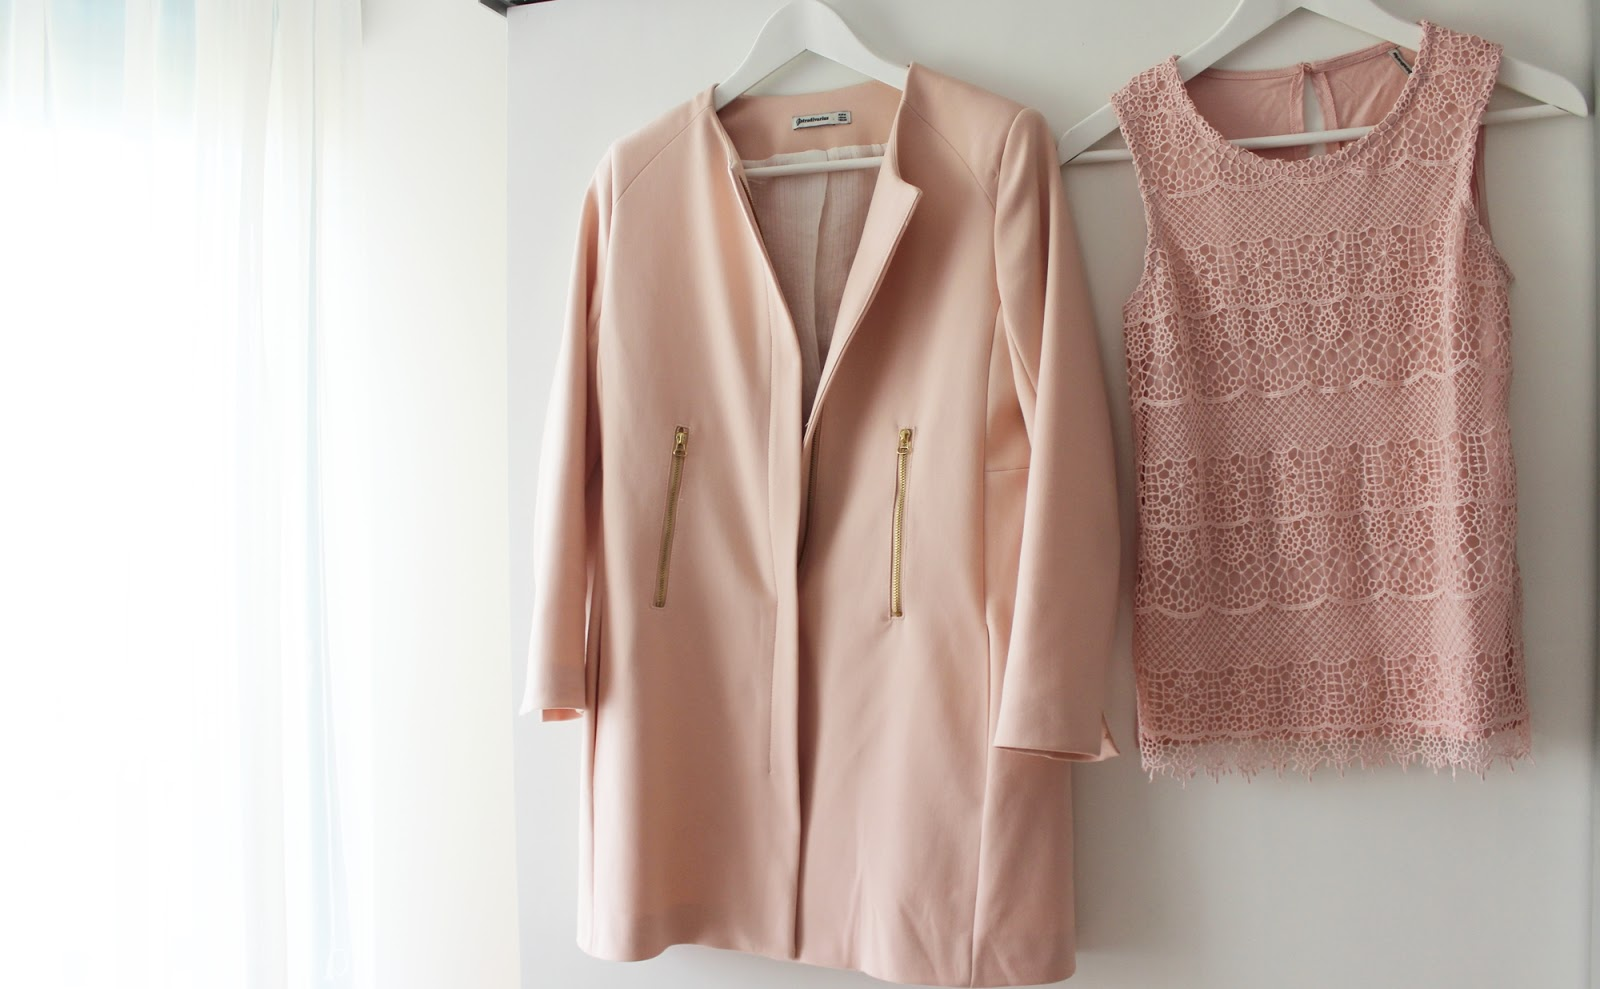 Barcelona shopping haul stradivarius zara coat apricot rose lace